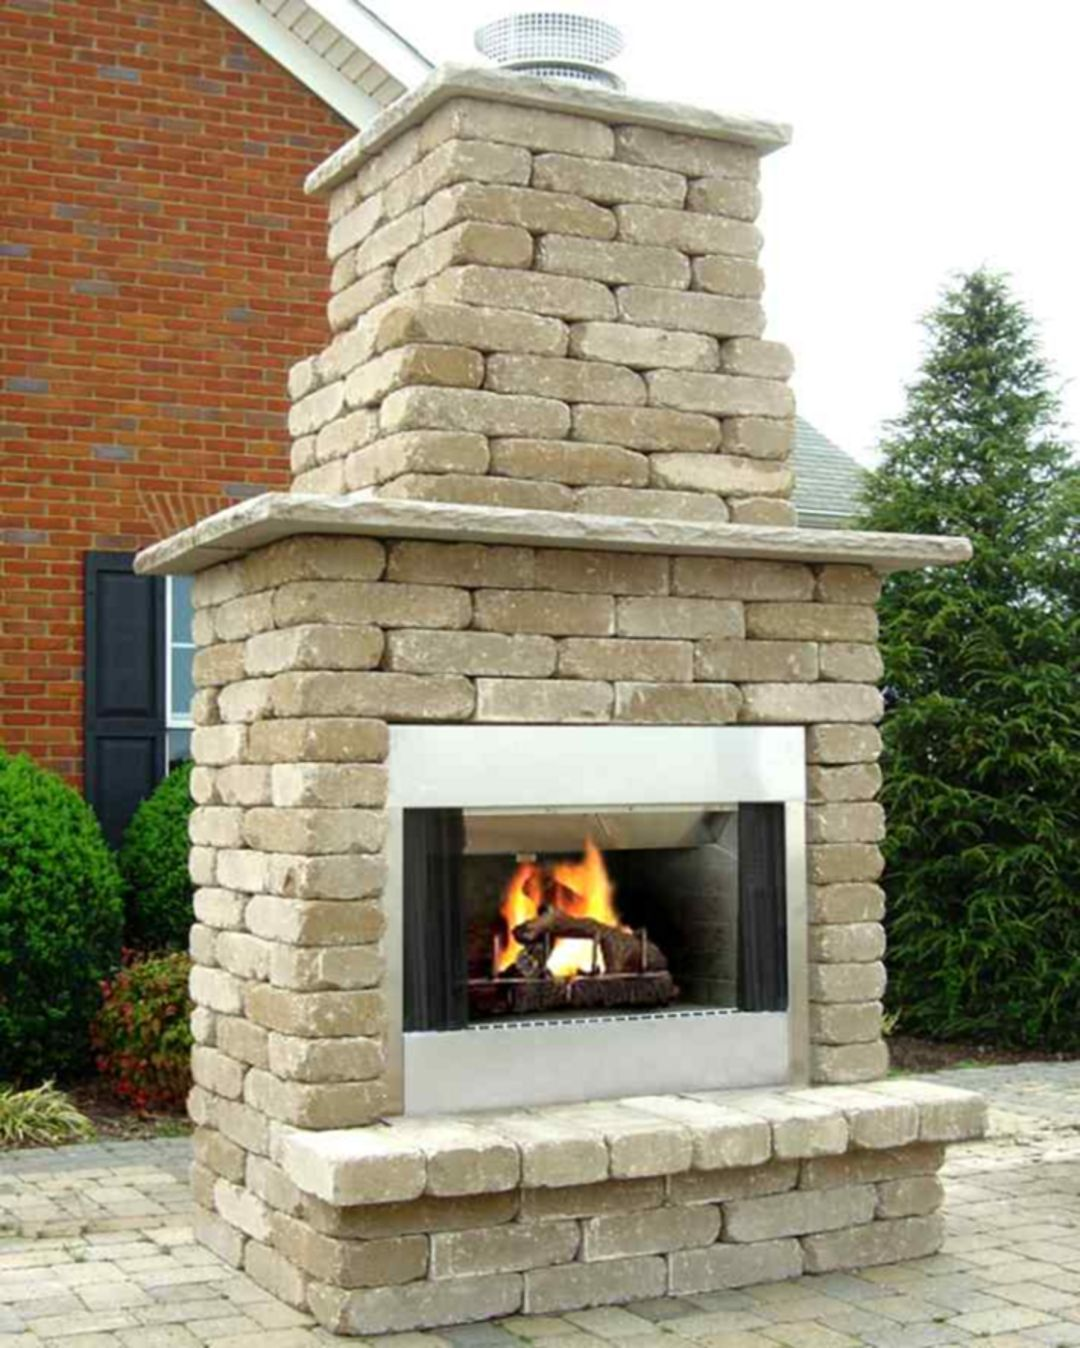 15 Lovely Outdoor Fireplace Ideas For Your Home Outdoor Outdoor Fireplace Kits